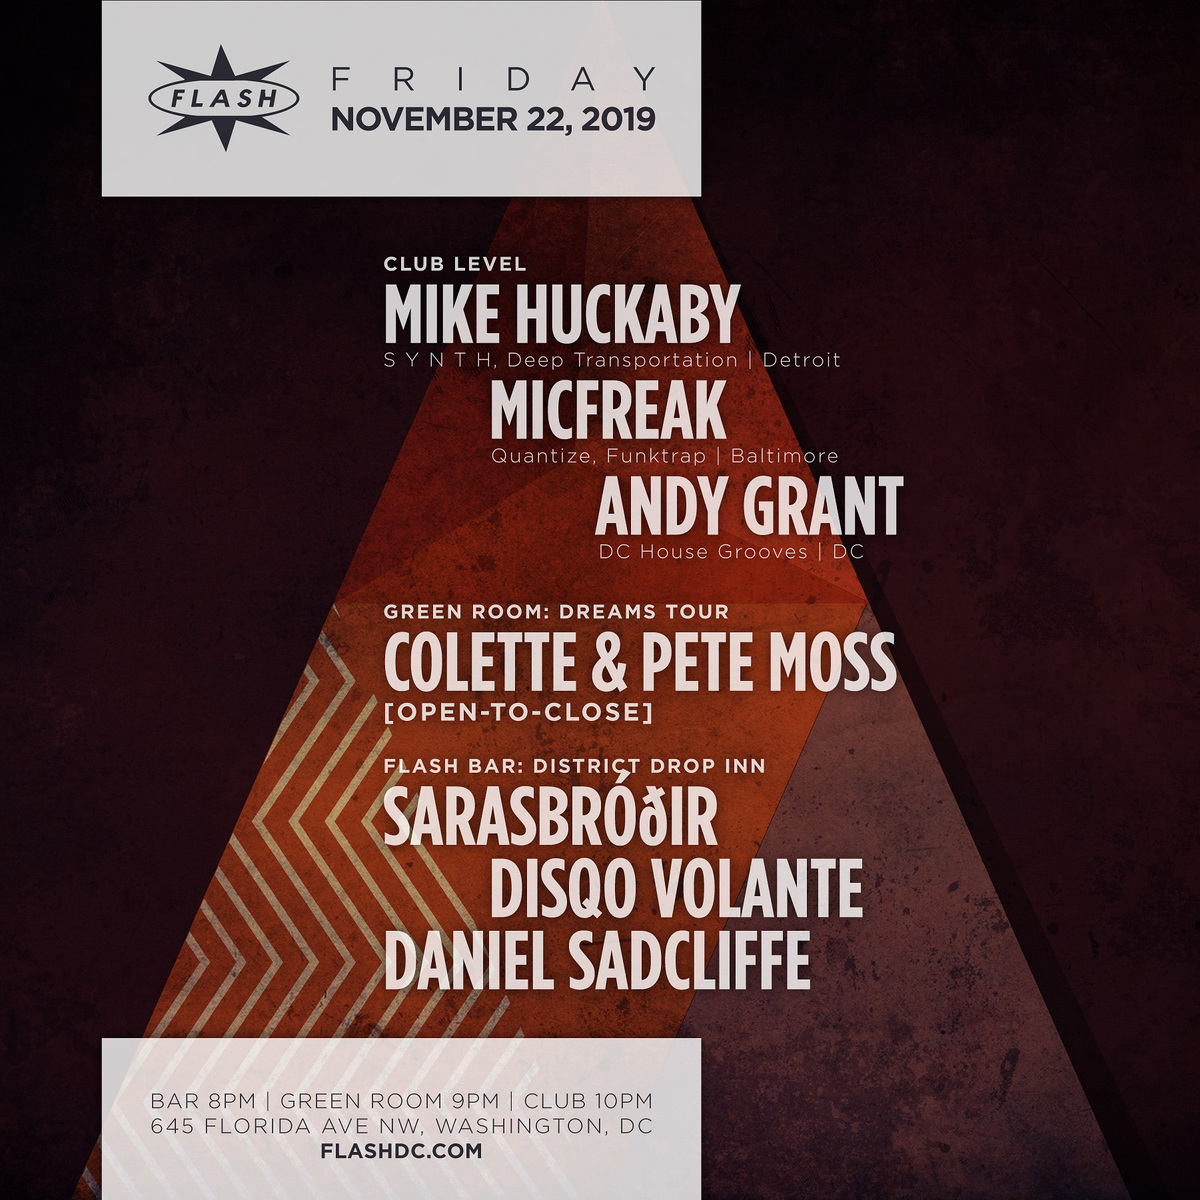 Mike Huckaby - Pete Moss - Colette event thumbnail